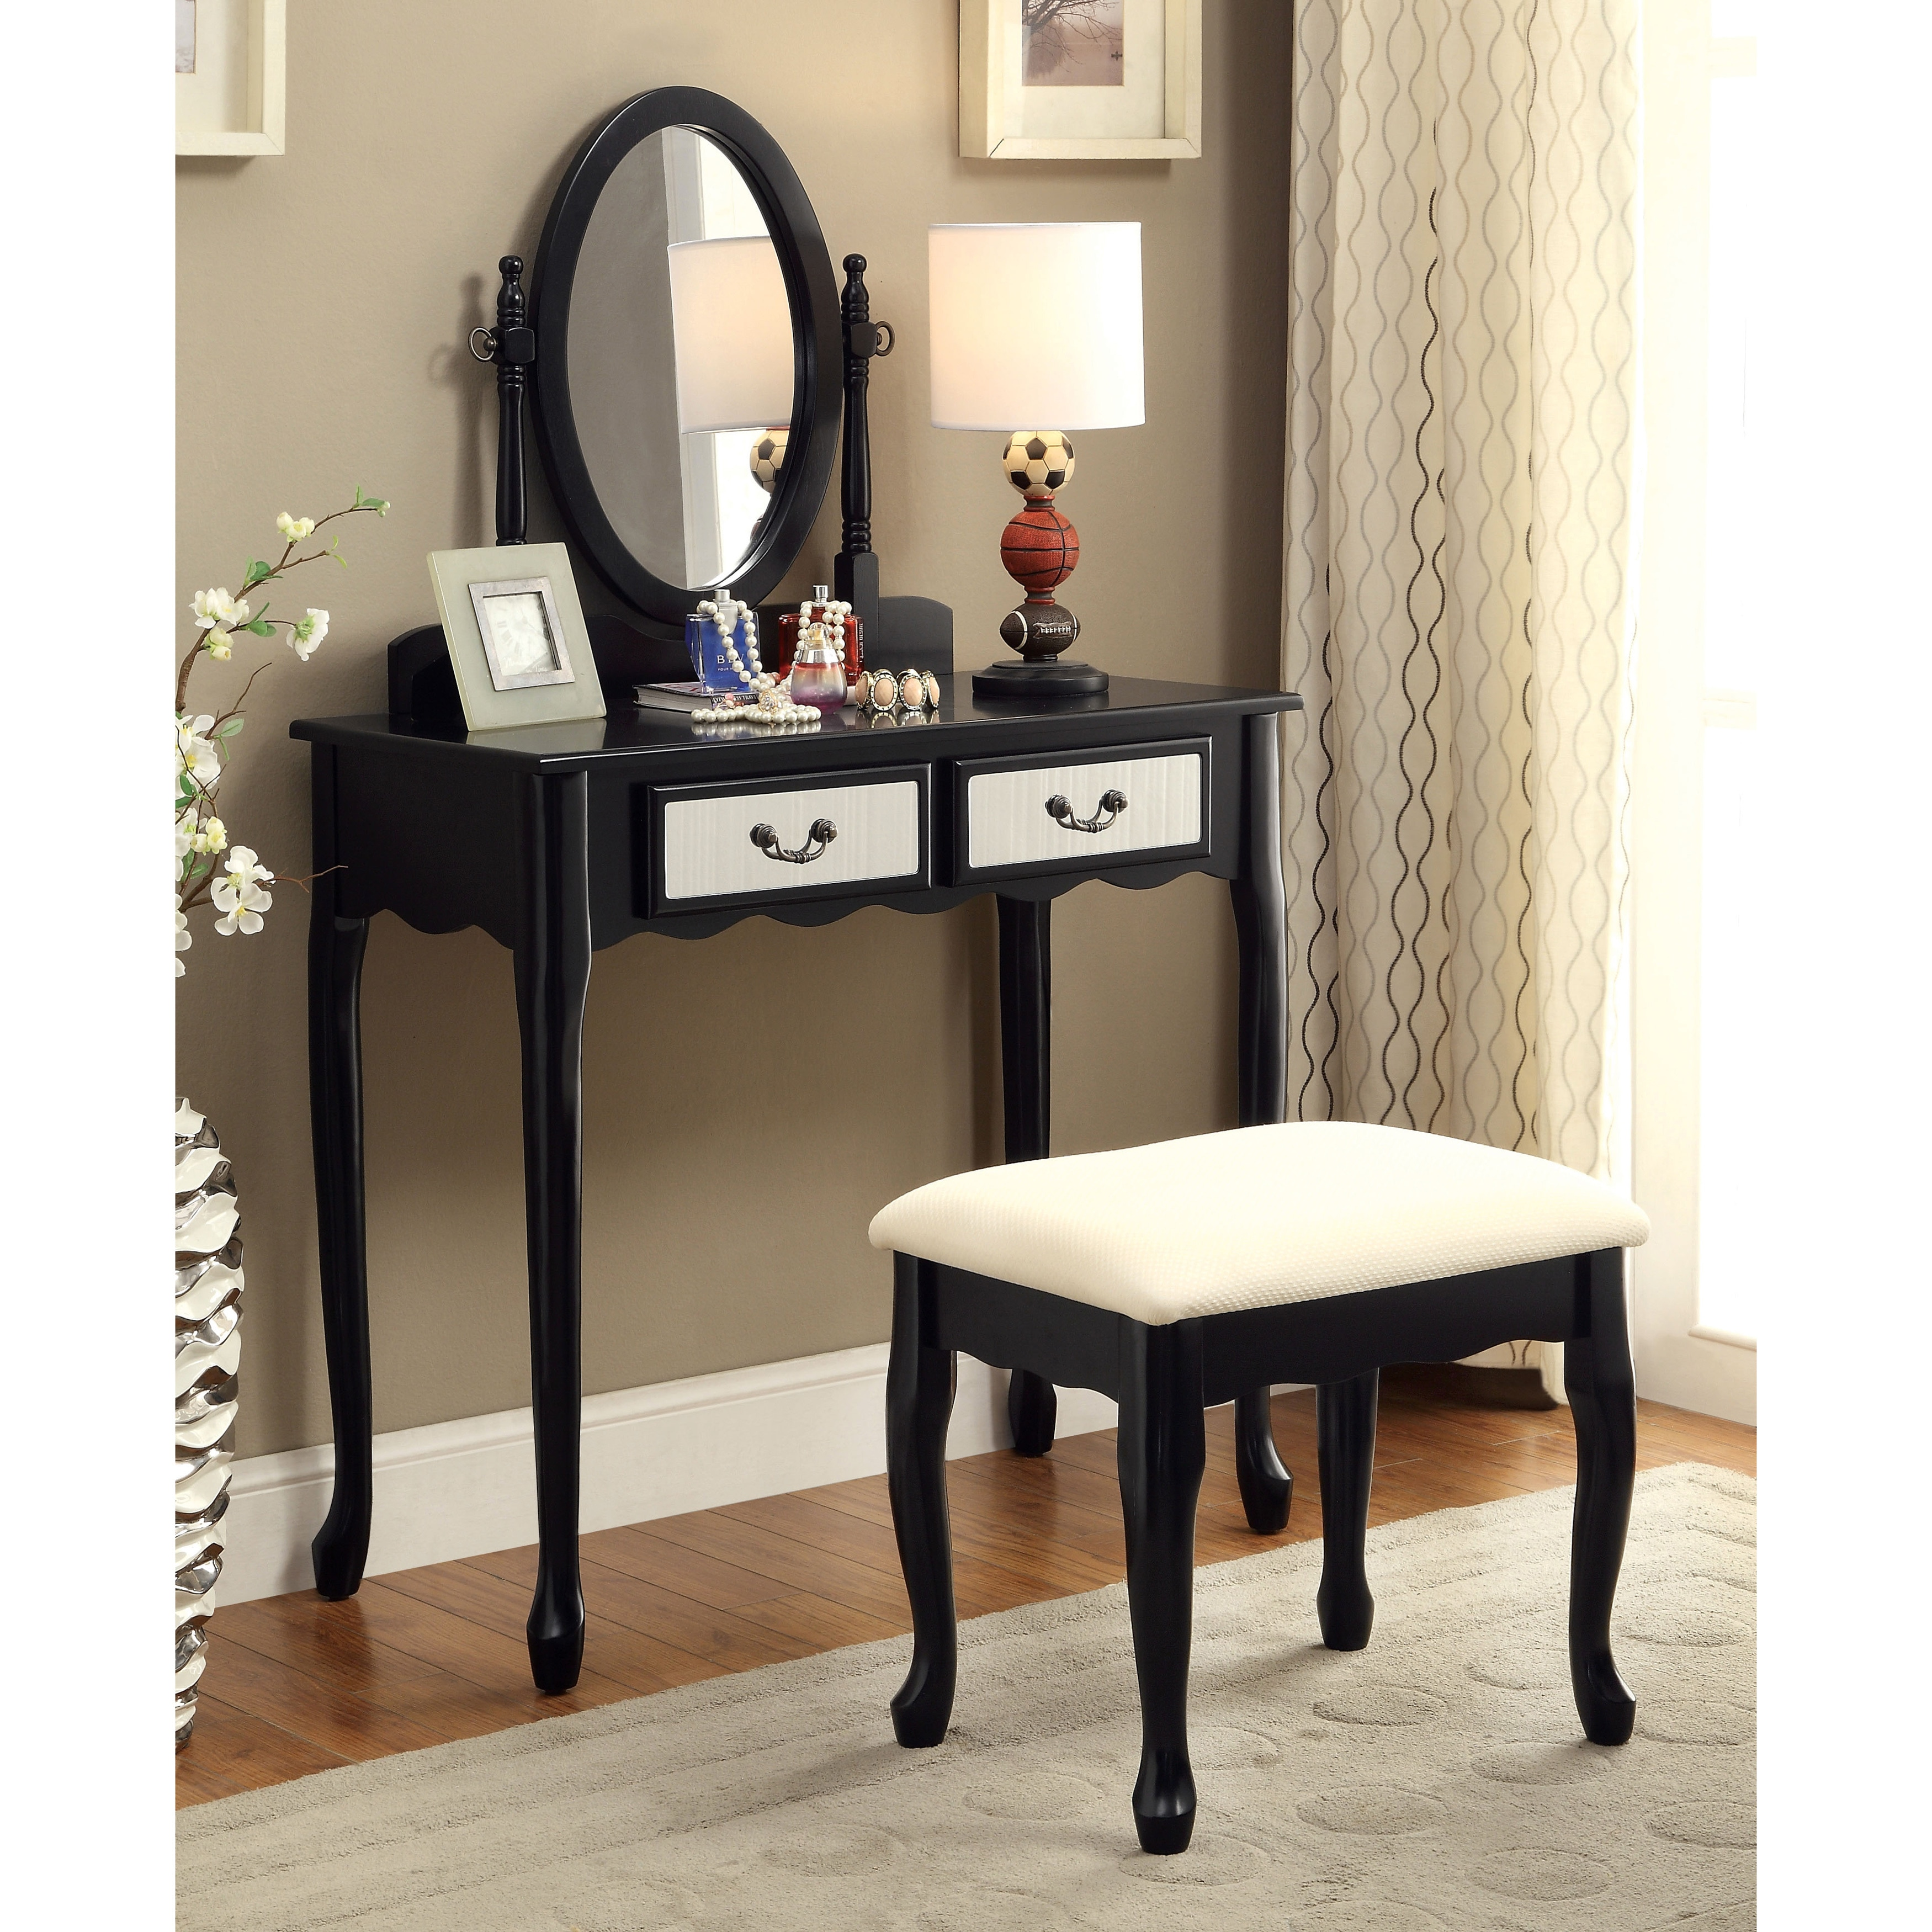 Nice Furniture Of America Savanna 2 Piece Classic Vanity Table And ...